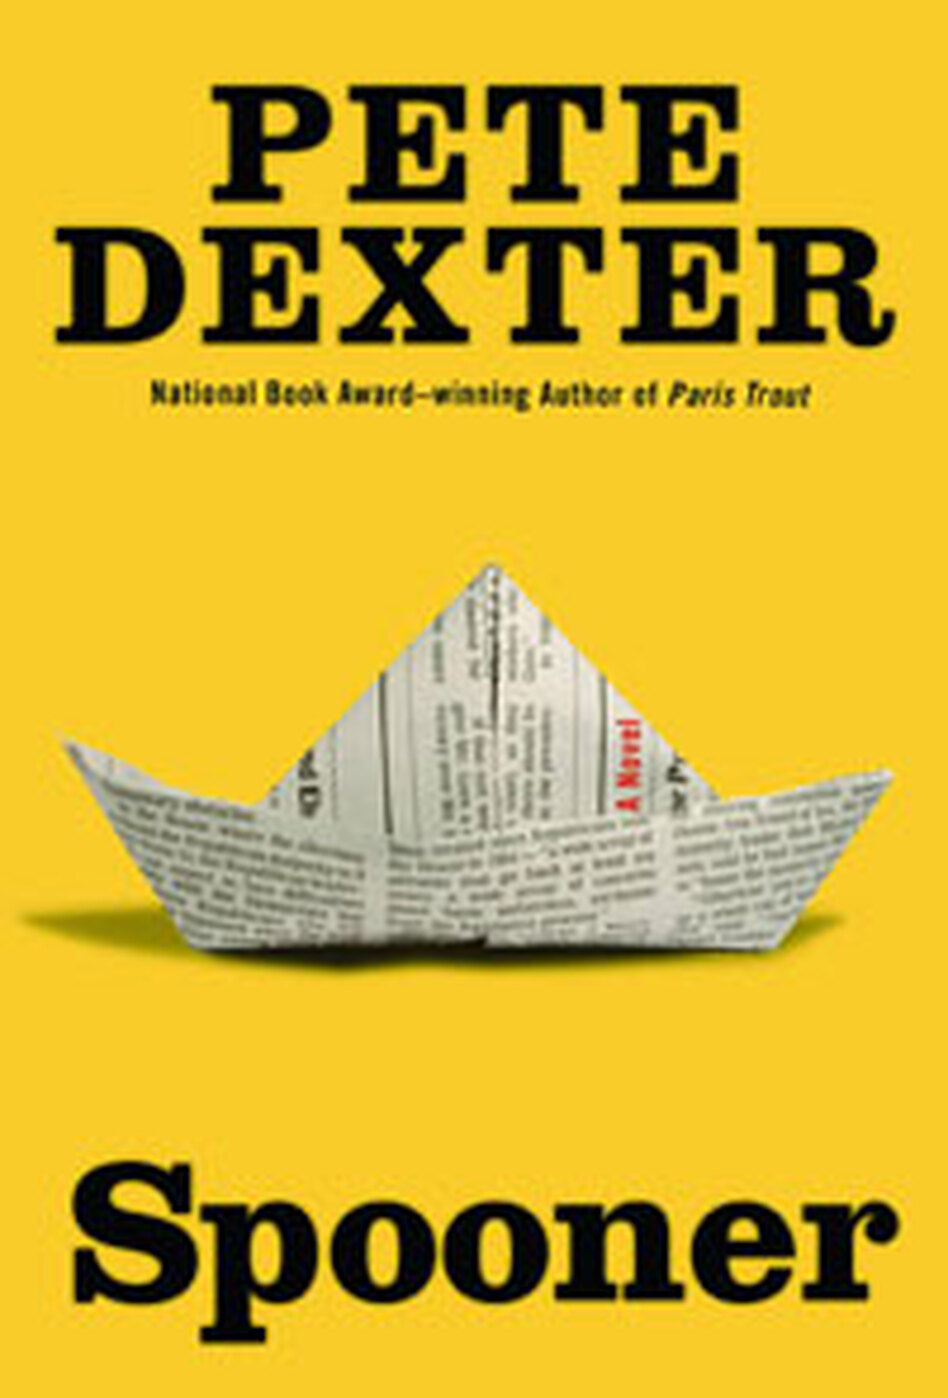 an analysis of the story about a man paris trout by pete dexter By peter dexter paris trout, by pete dexter, is a story about a man, paris trout, who shoots and kills a fourteen year old black girl the problem is that trout thinks he is totally.